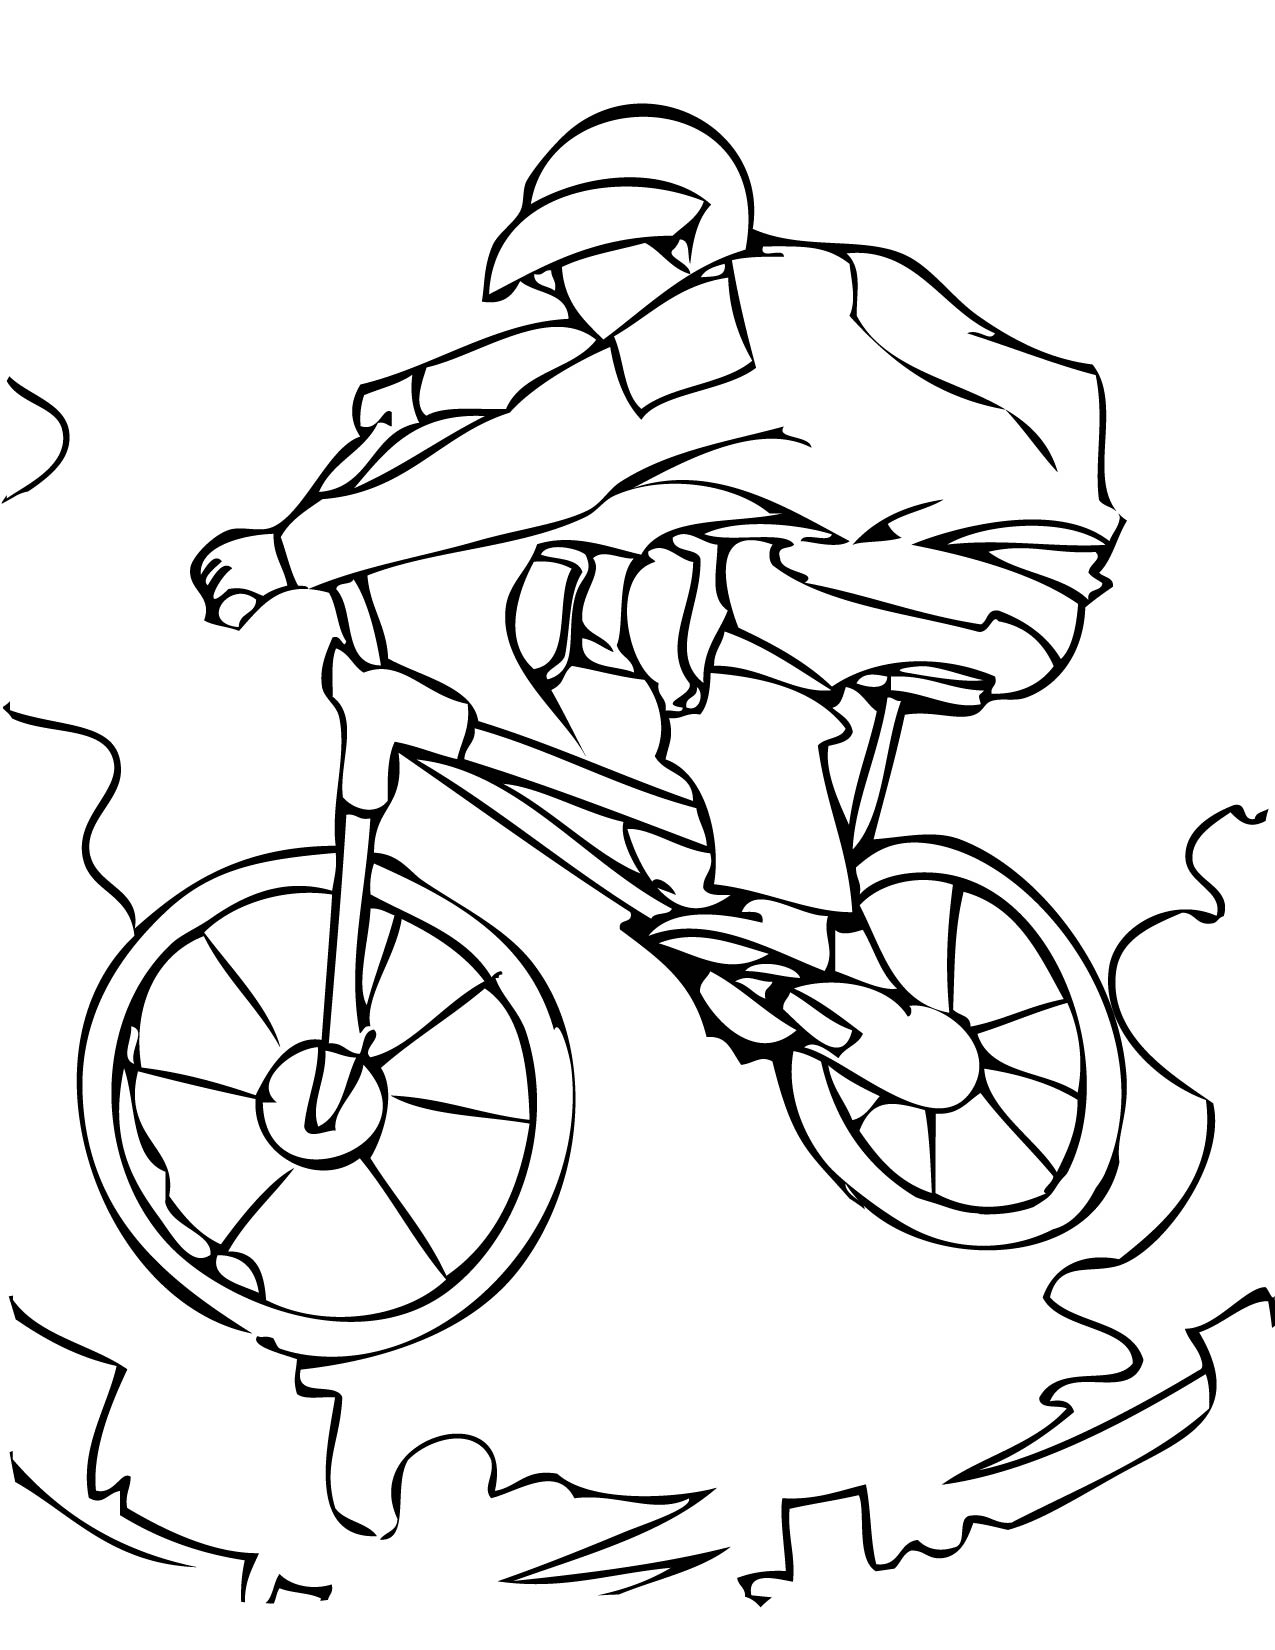 sport pictures to color 121 sports coloring sheets customize and print pdf to pictures sport color